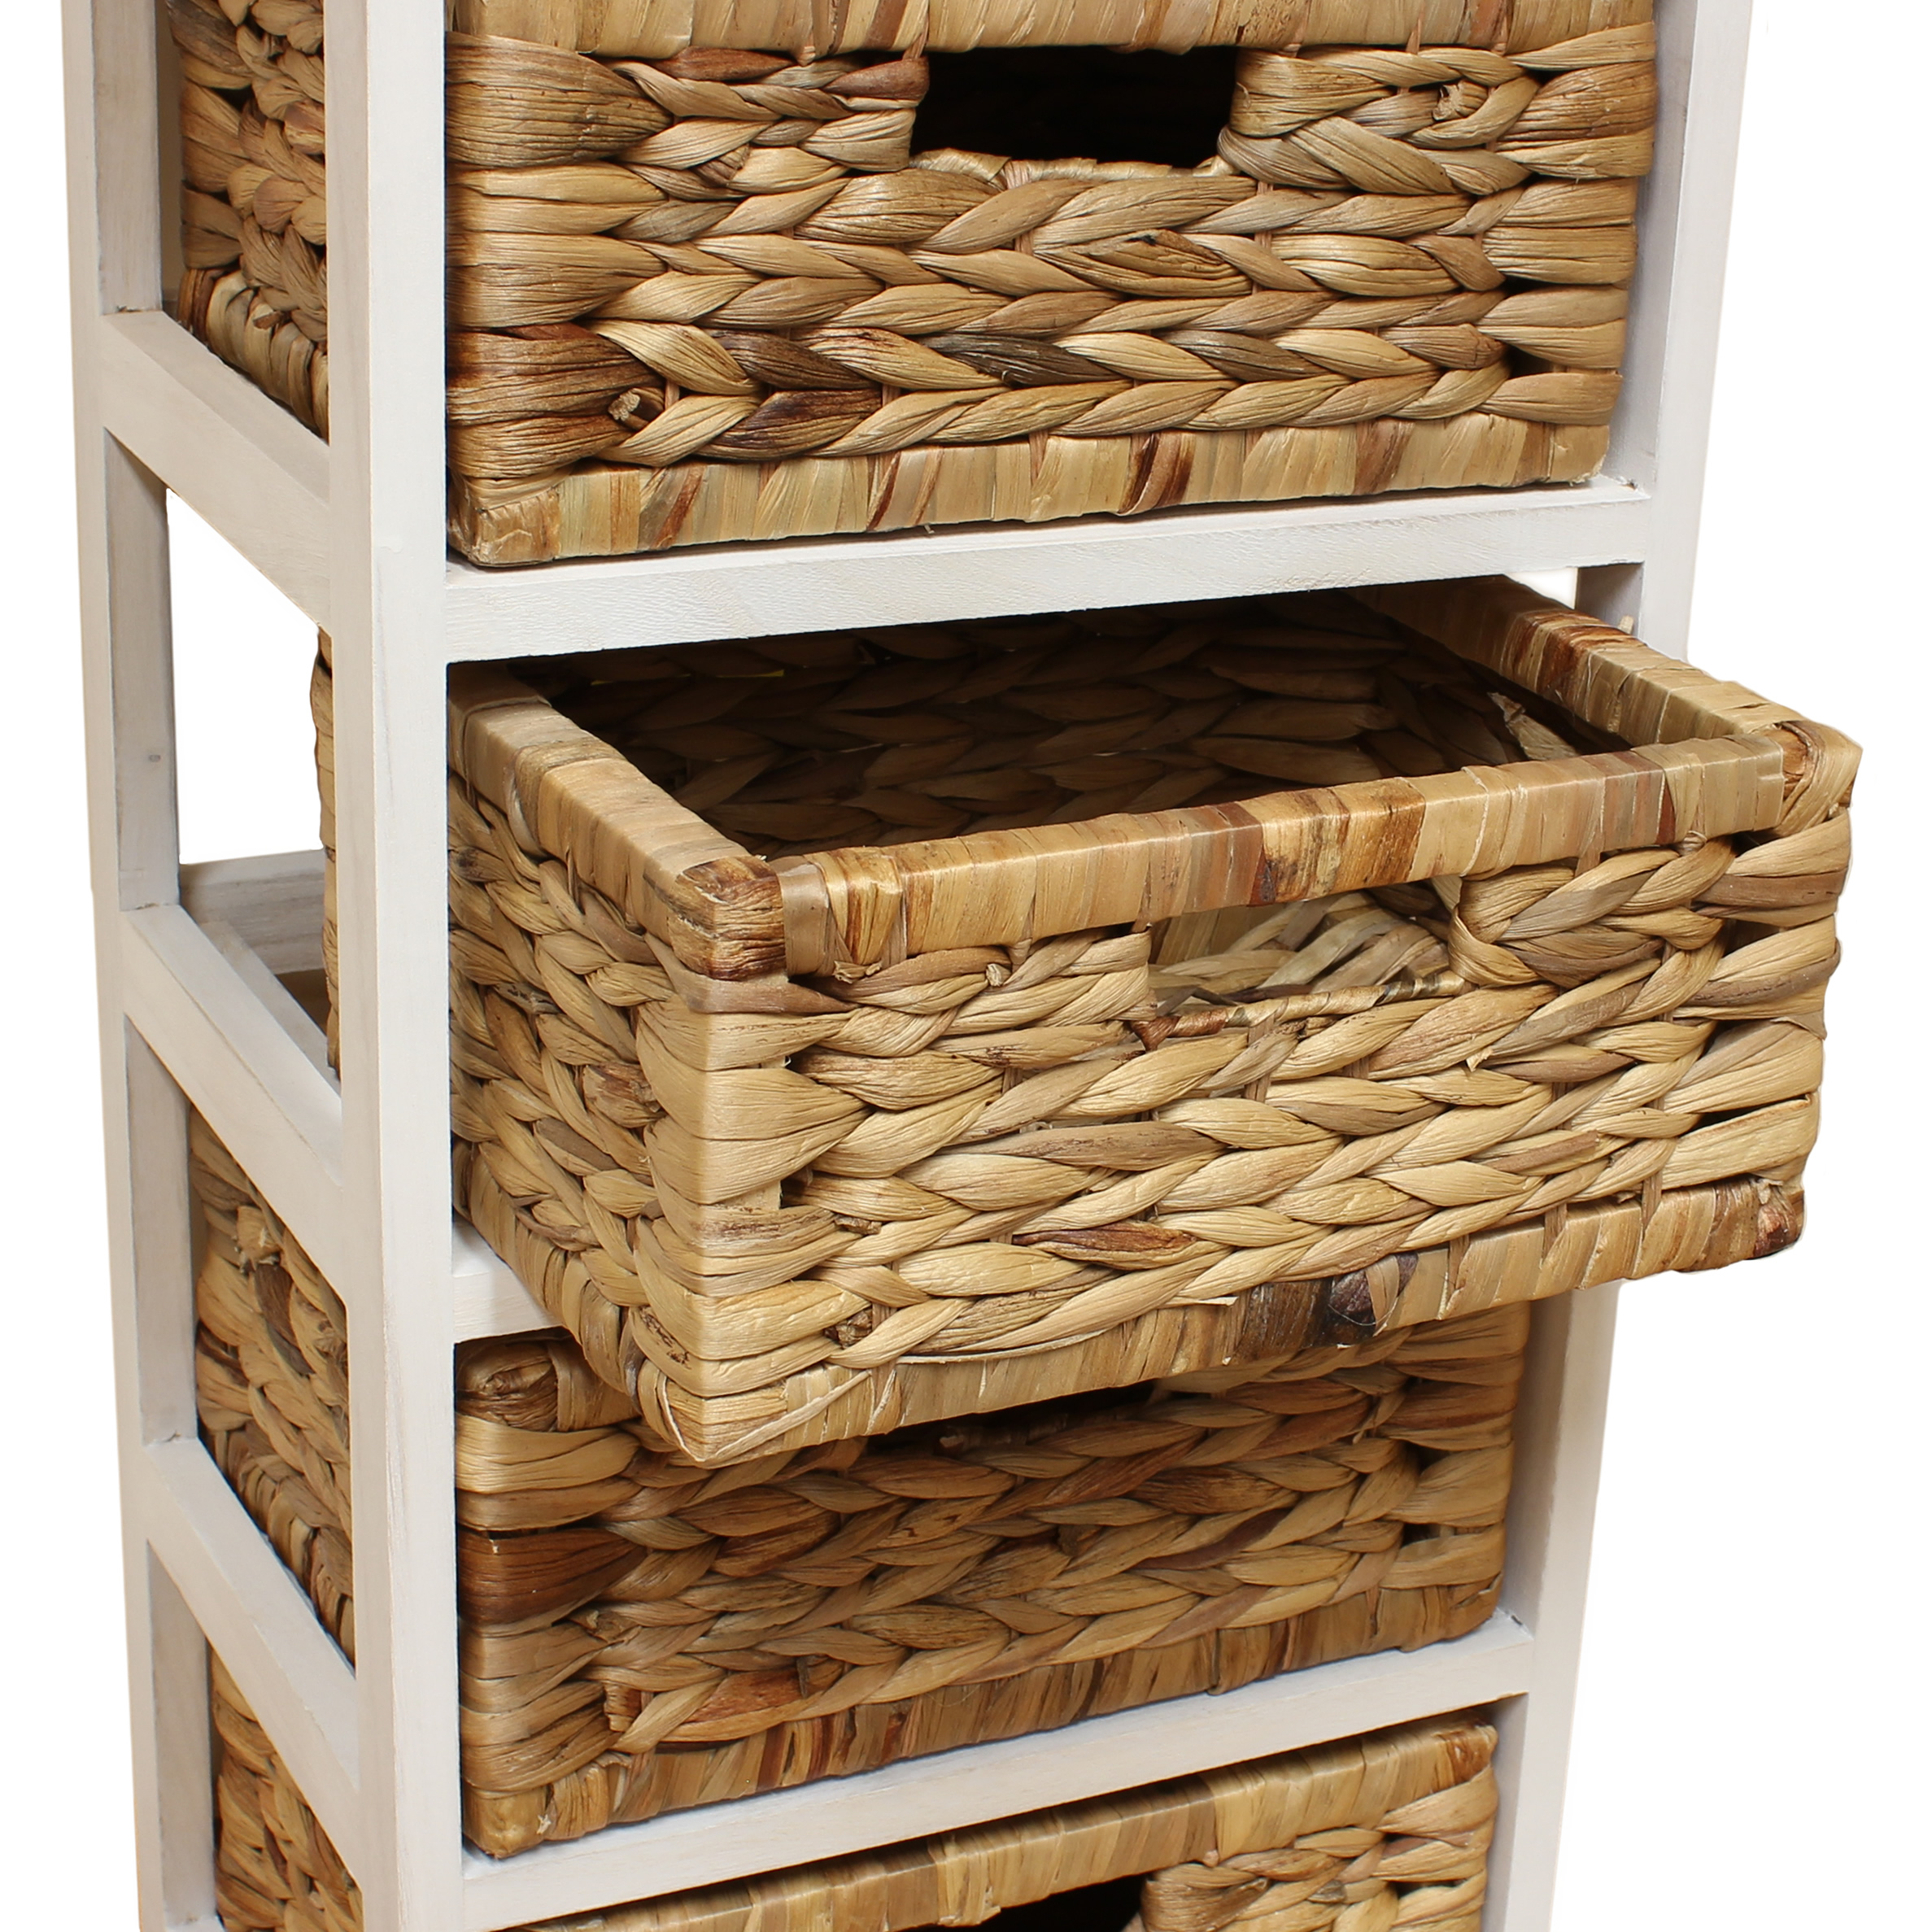 Basket Storage With Drawers Cabinets ~ White seagrass basket drawer chest storage cabinet unit